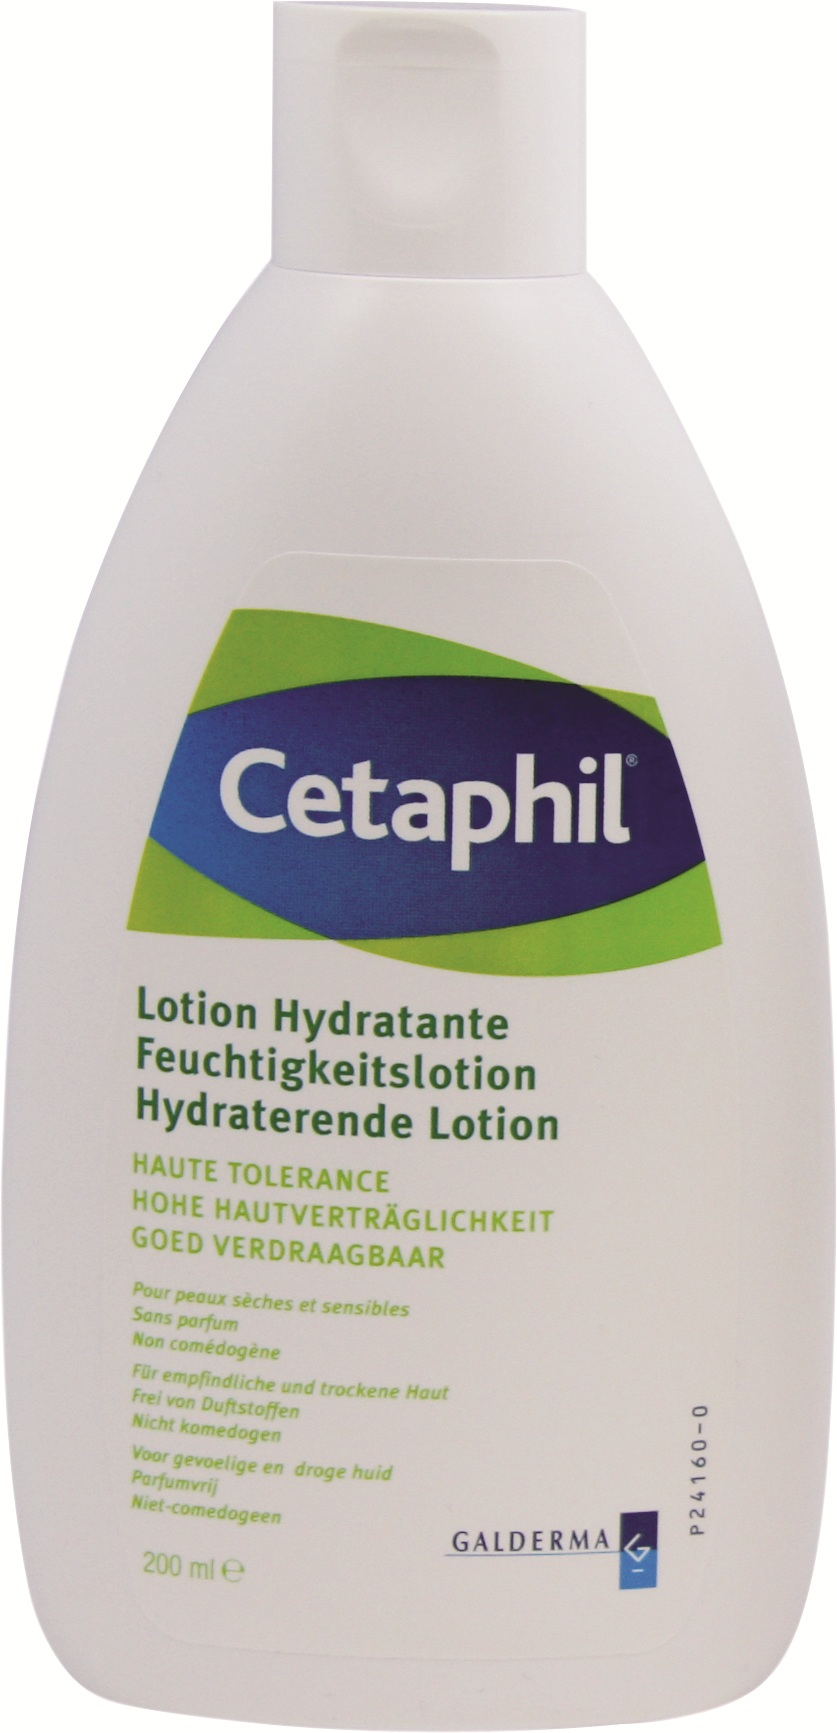 cetaphil hydraterende lotion